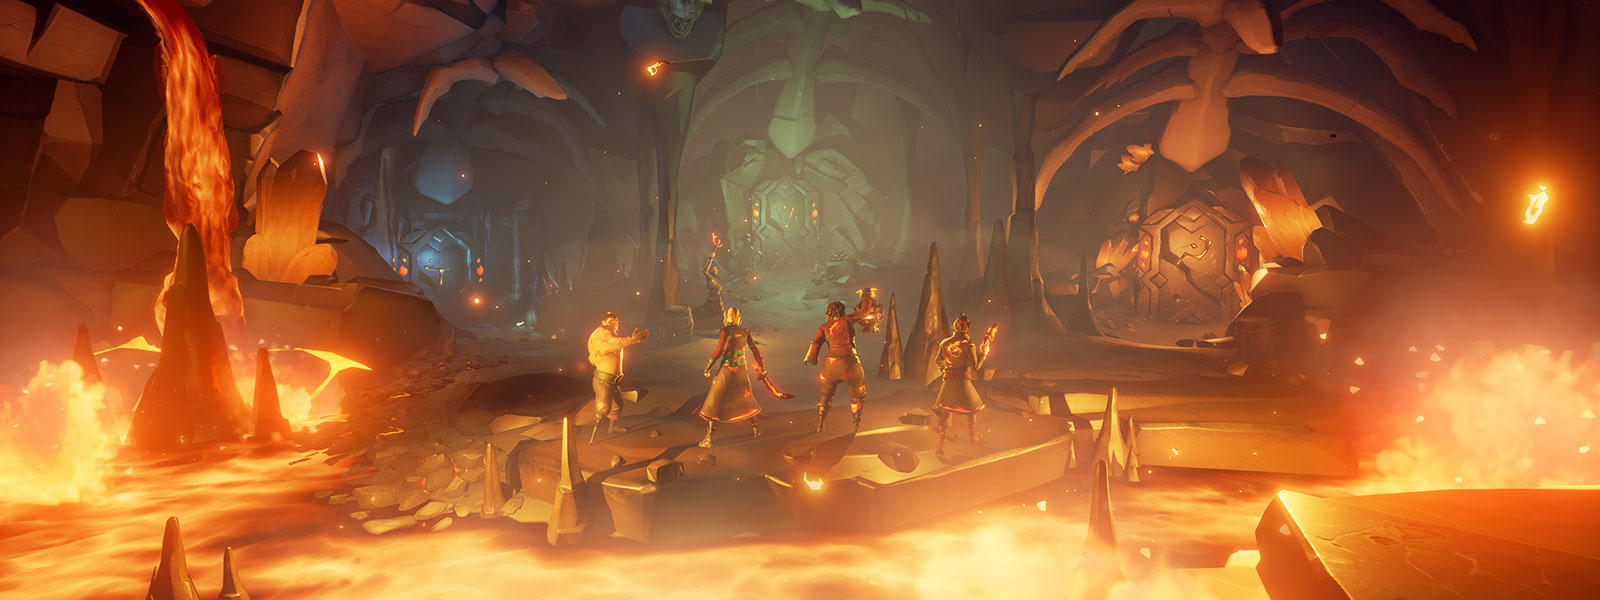 Fire karakterer fra Sea of Thieves i en grotte med lava